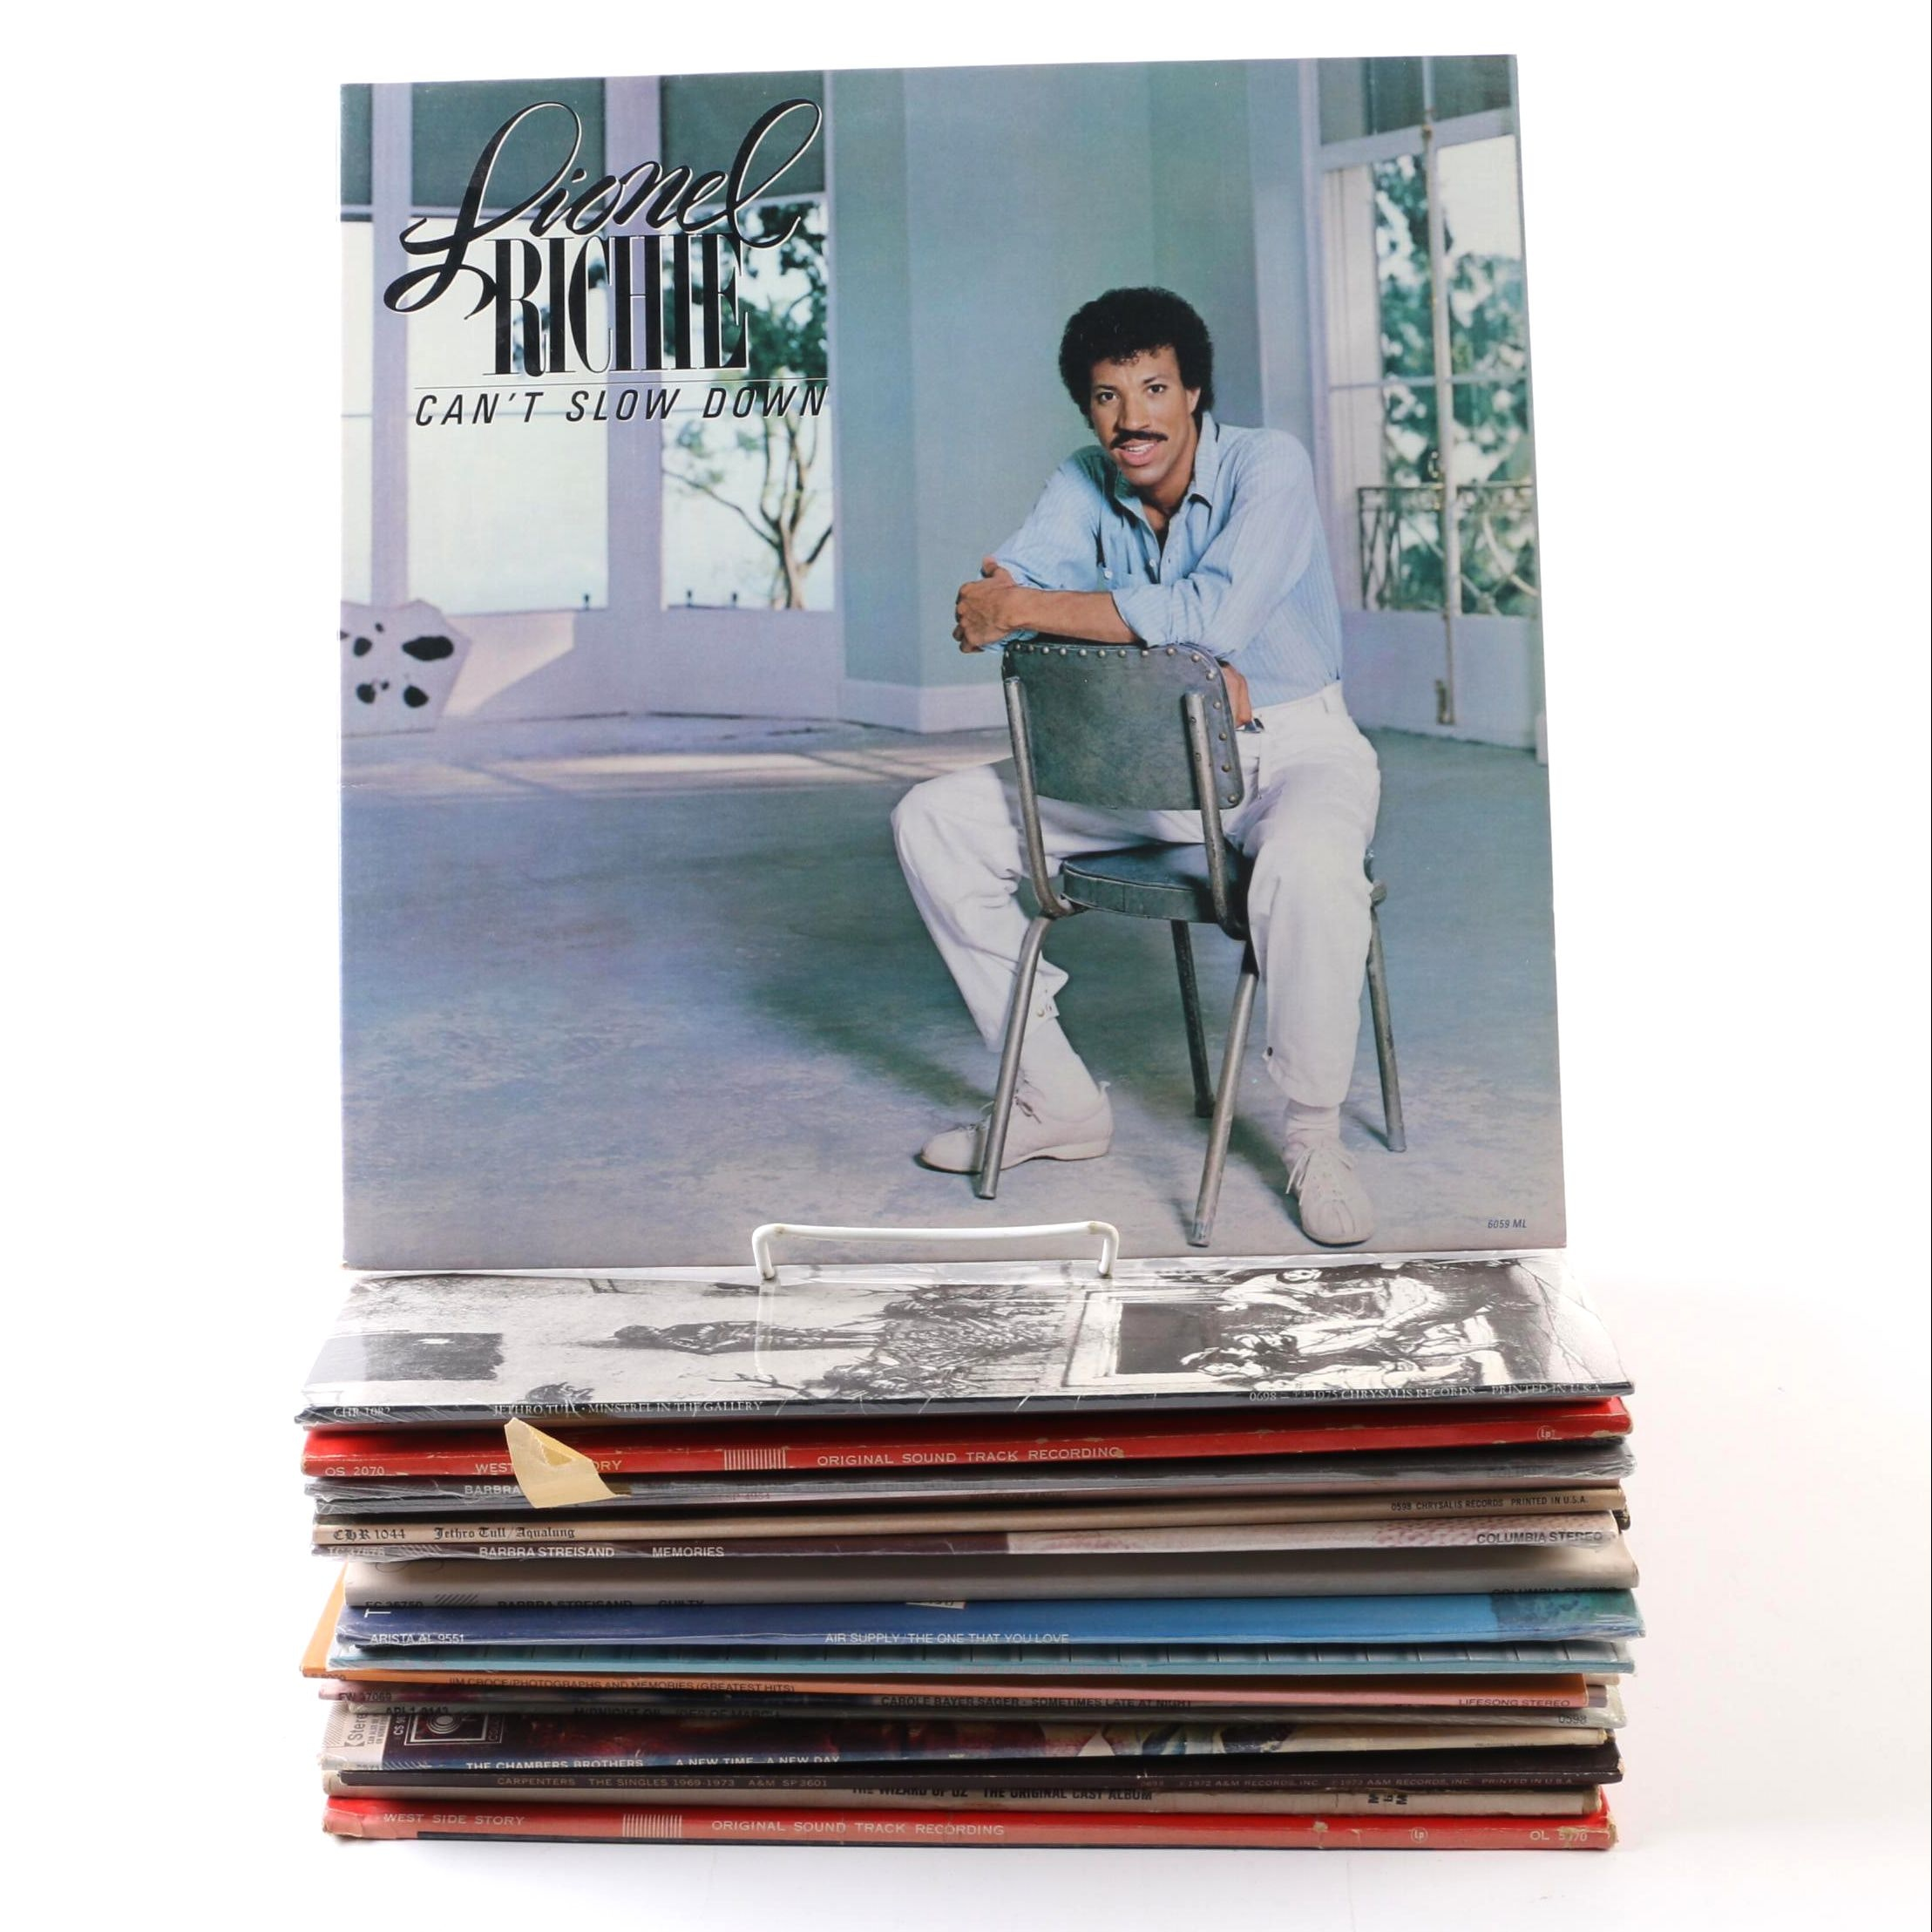 Vintage Records including Lionel Richie, Barbra Streisand, Jim Croce, Bee Gees